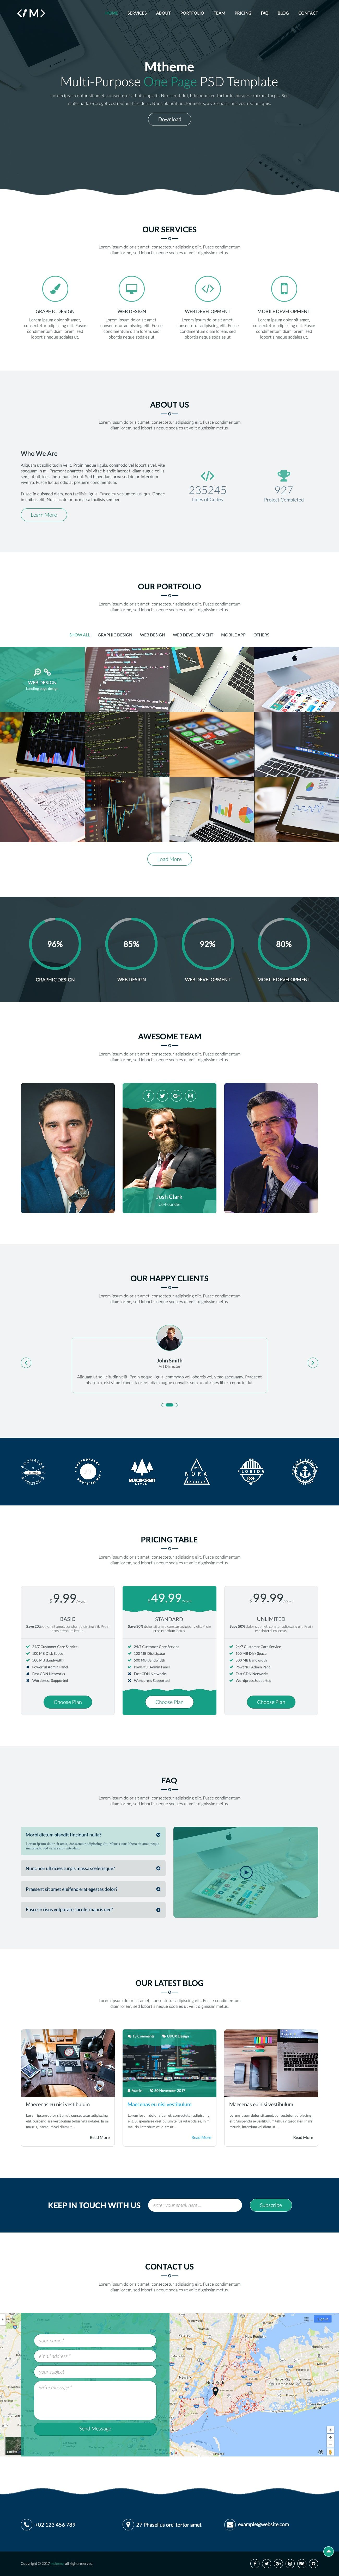 MTheme - Multi-Purpose One Page PSD Template Screenshot 6